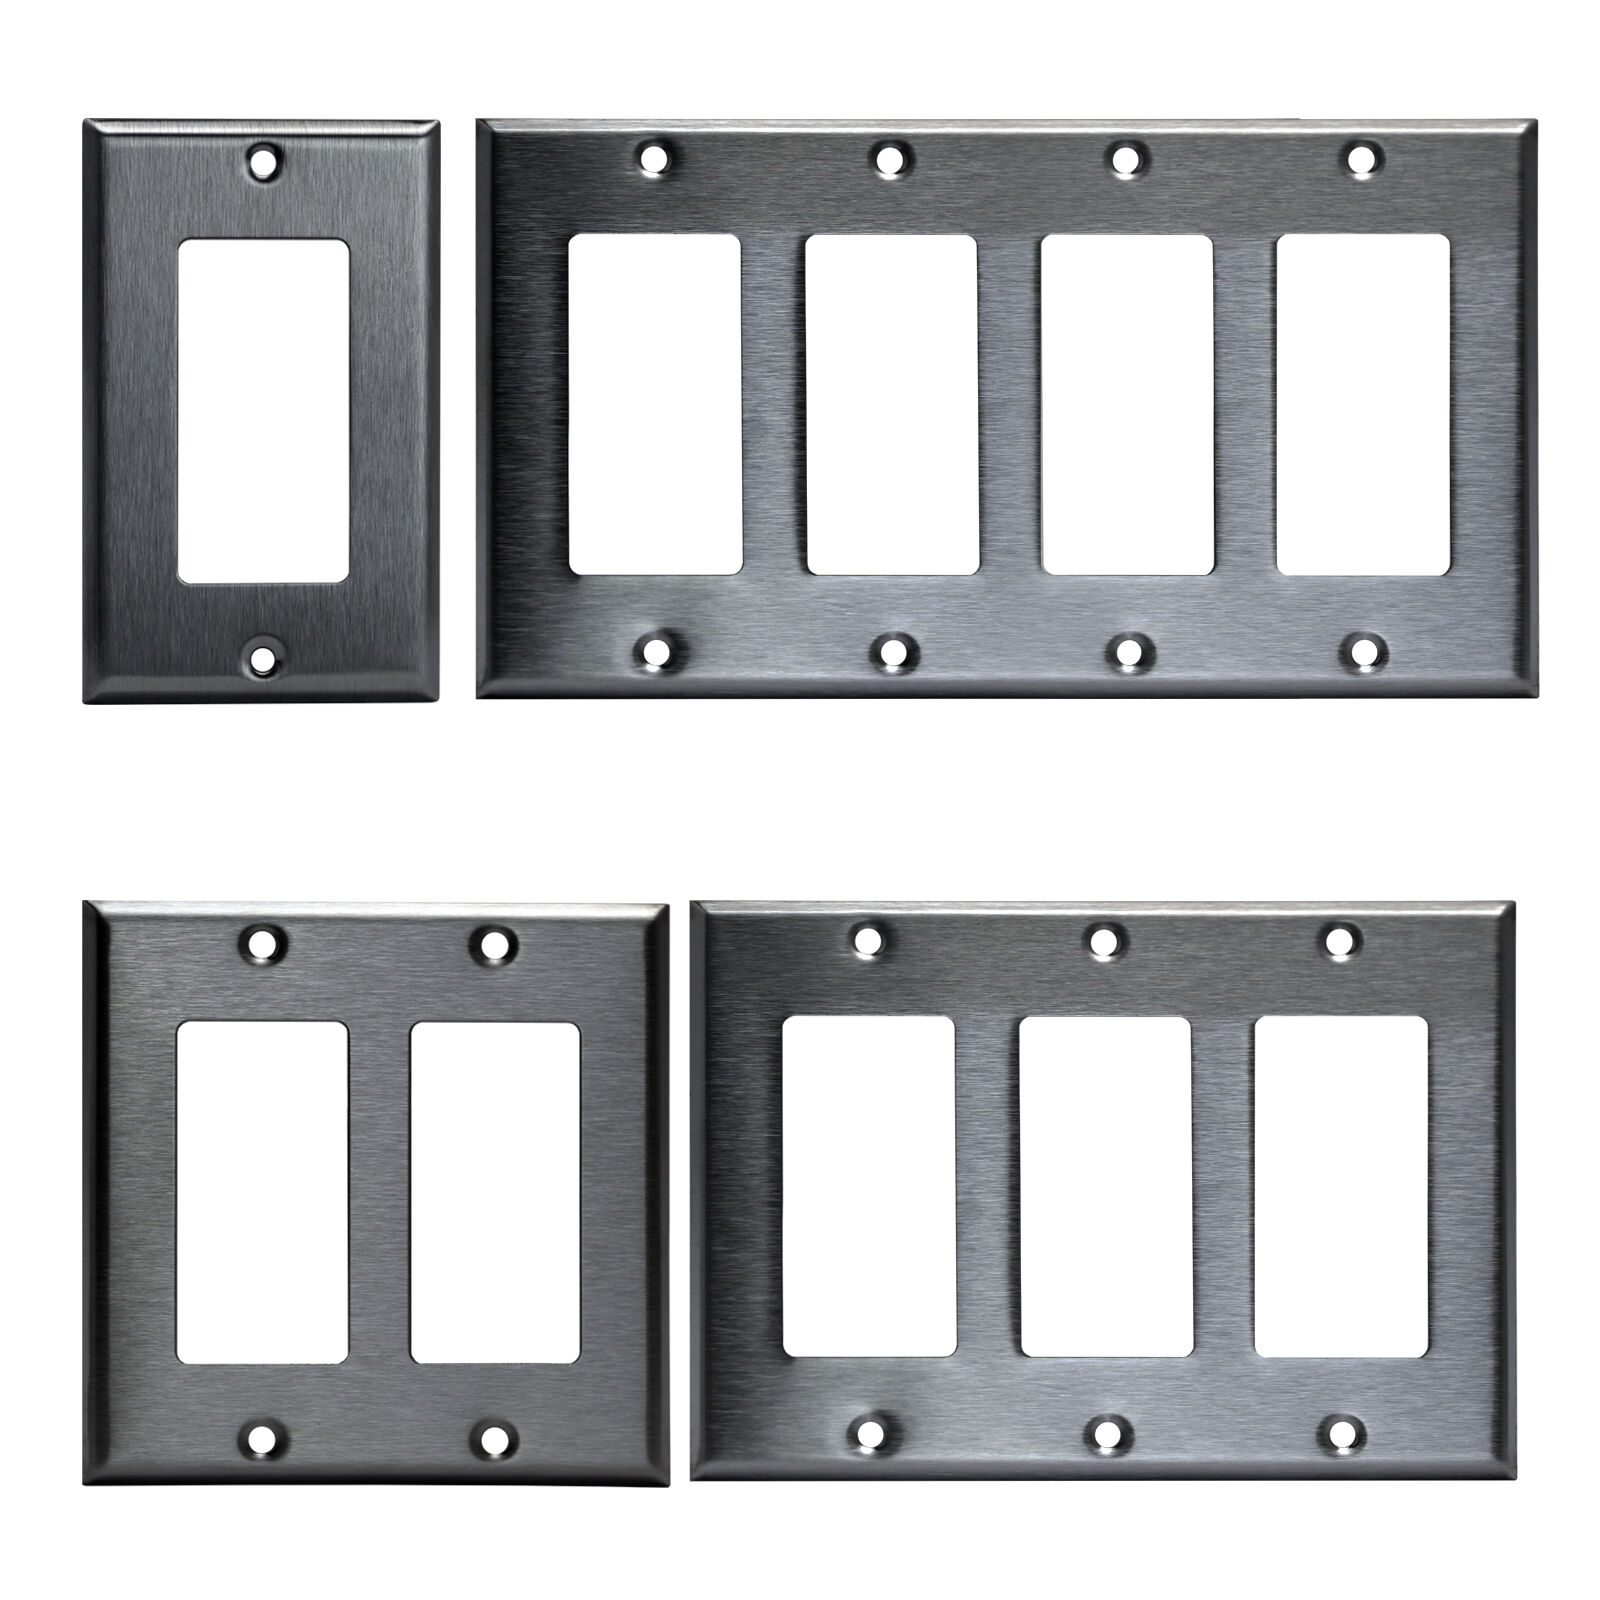 Metal Electrical Outlet Covers Oversized Outlet Covers: Decorator Brushed Stainless Rocker Wall Switch Plate